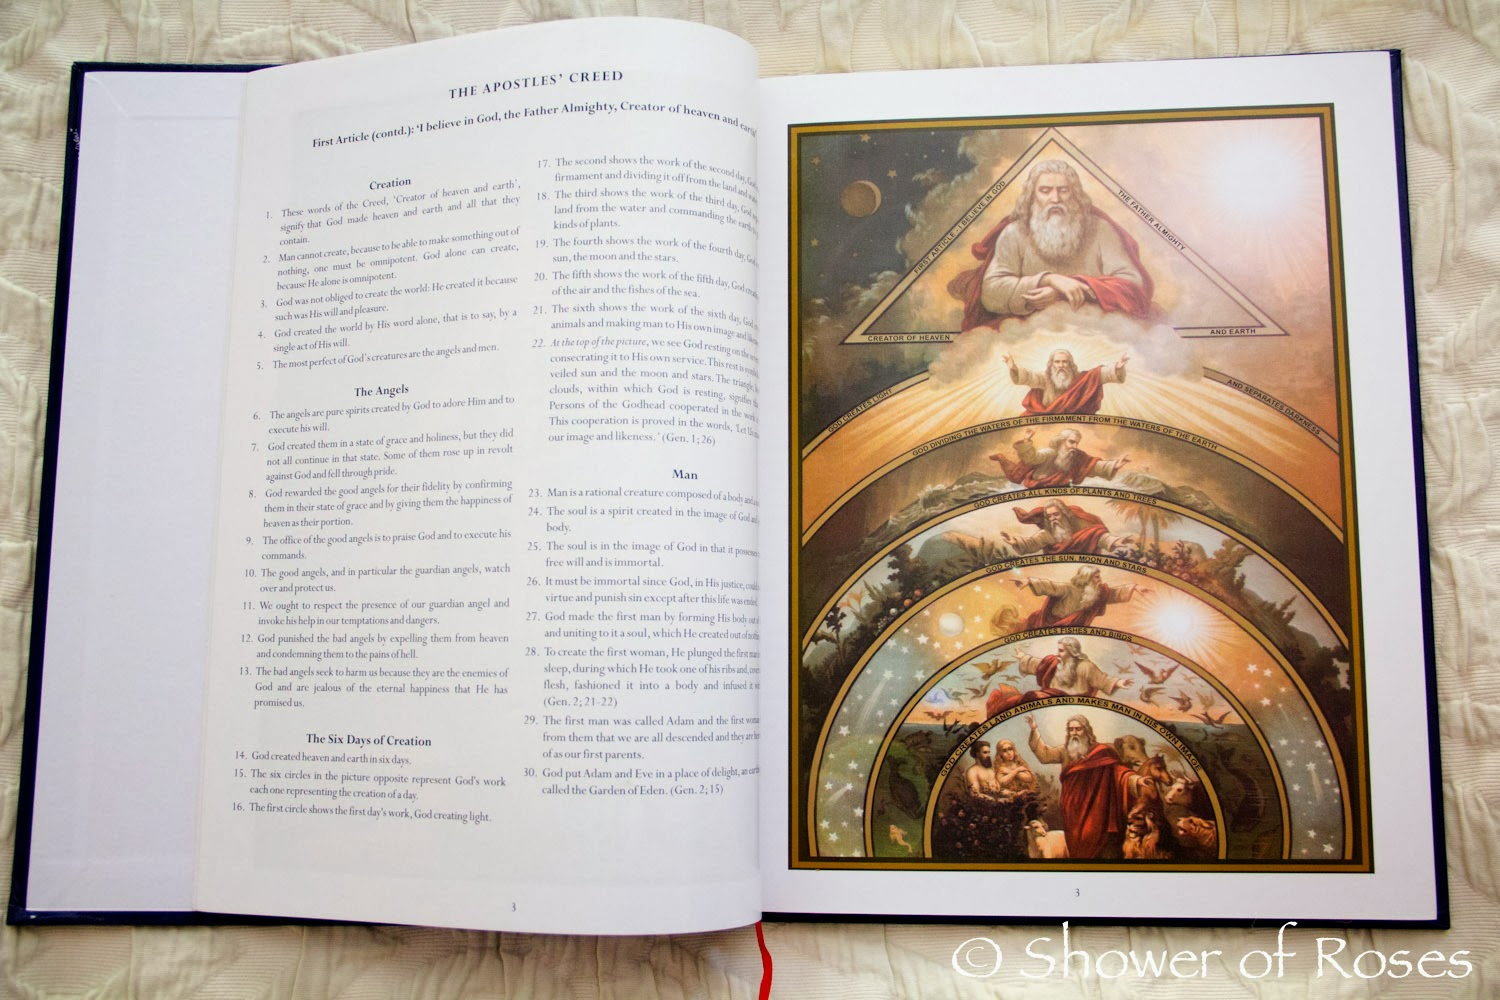 Shower of Roses: The Catechism in Pictures - photo#36